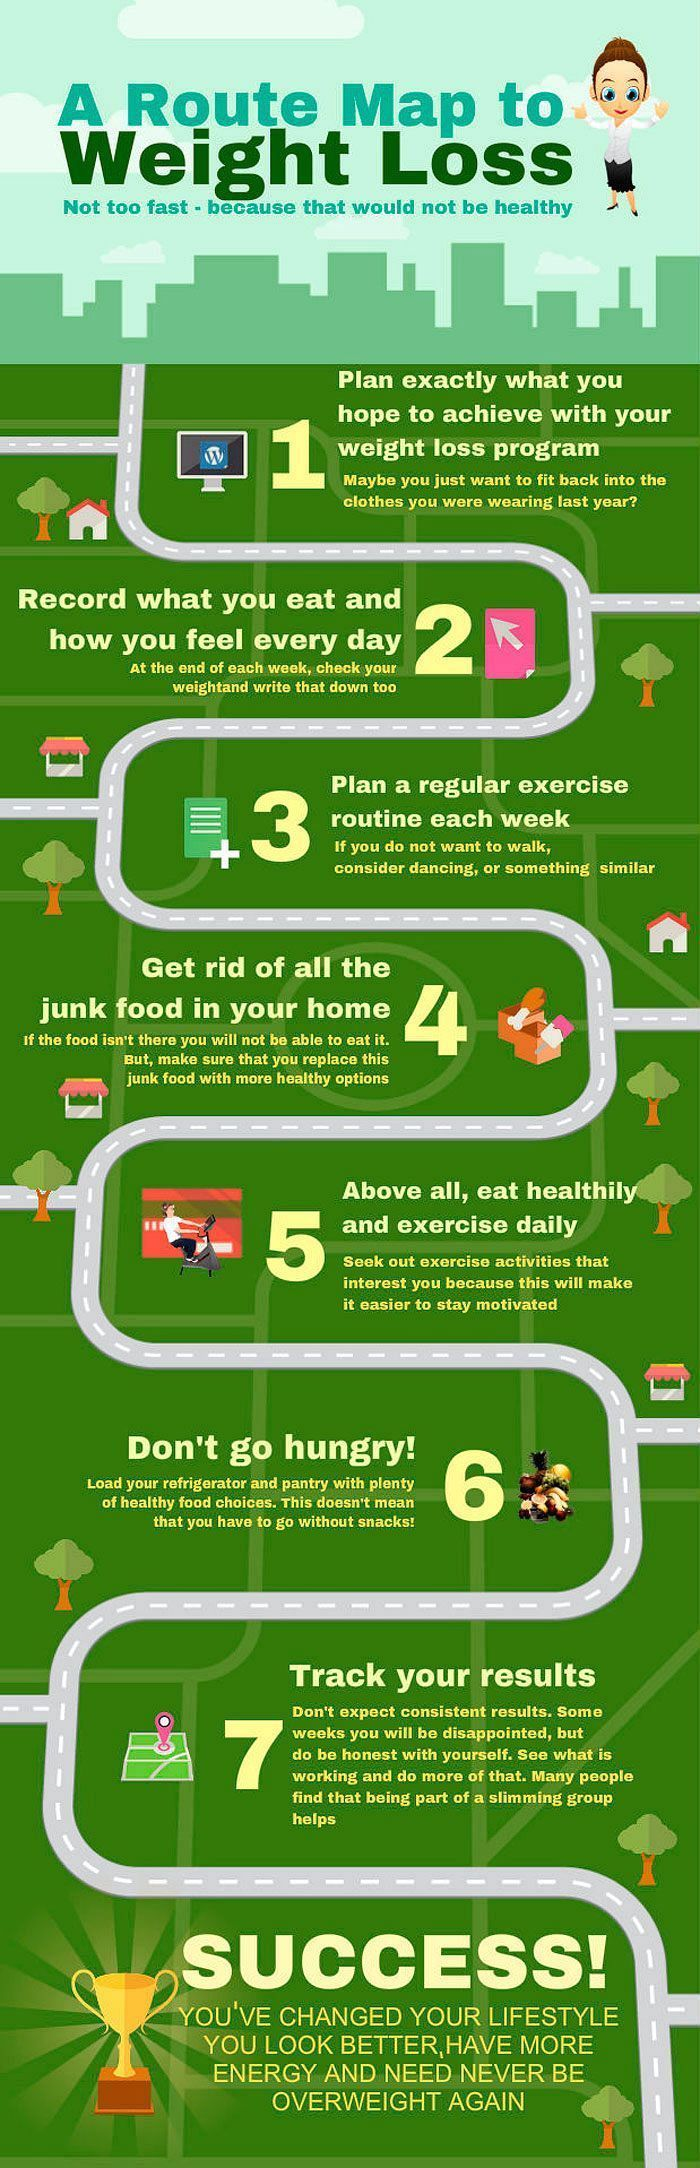 How to lose 23 pounds in 21 days.  Route map to weight loss